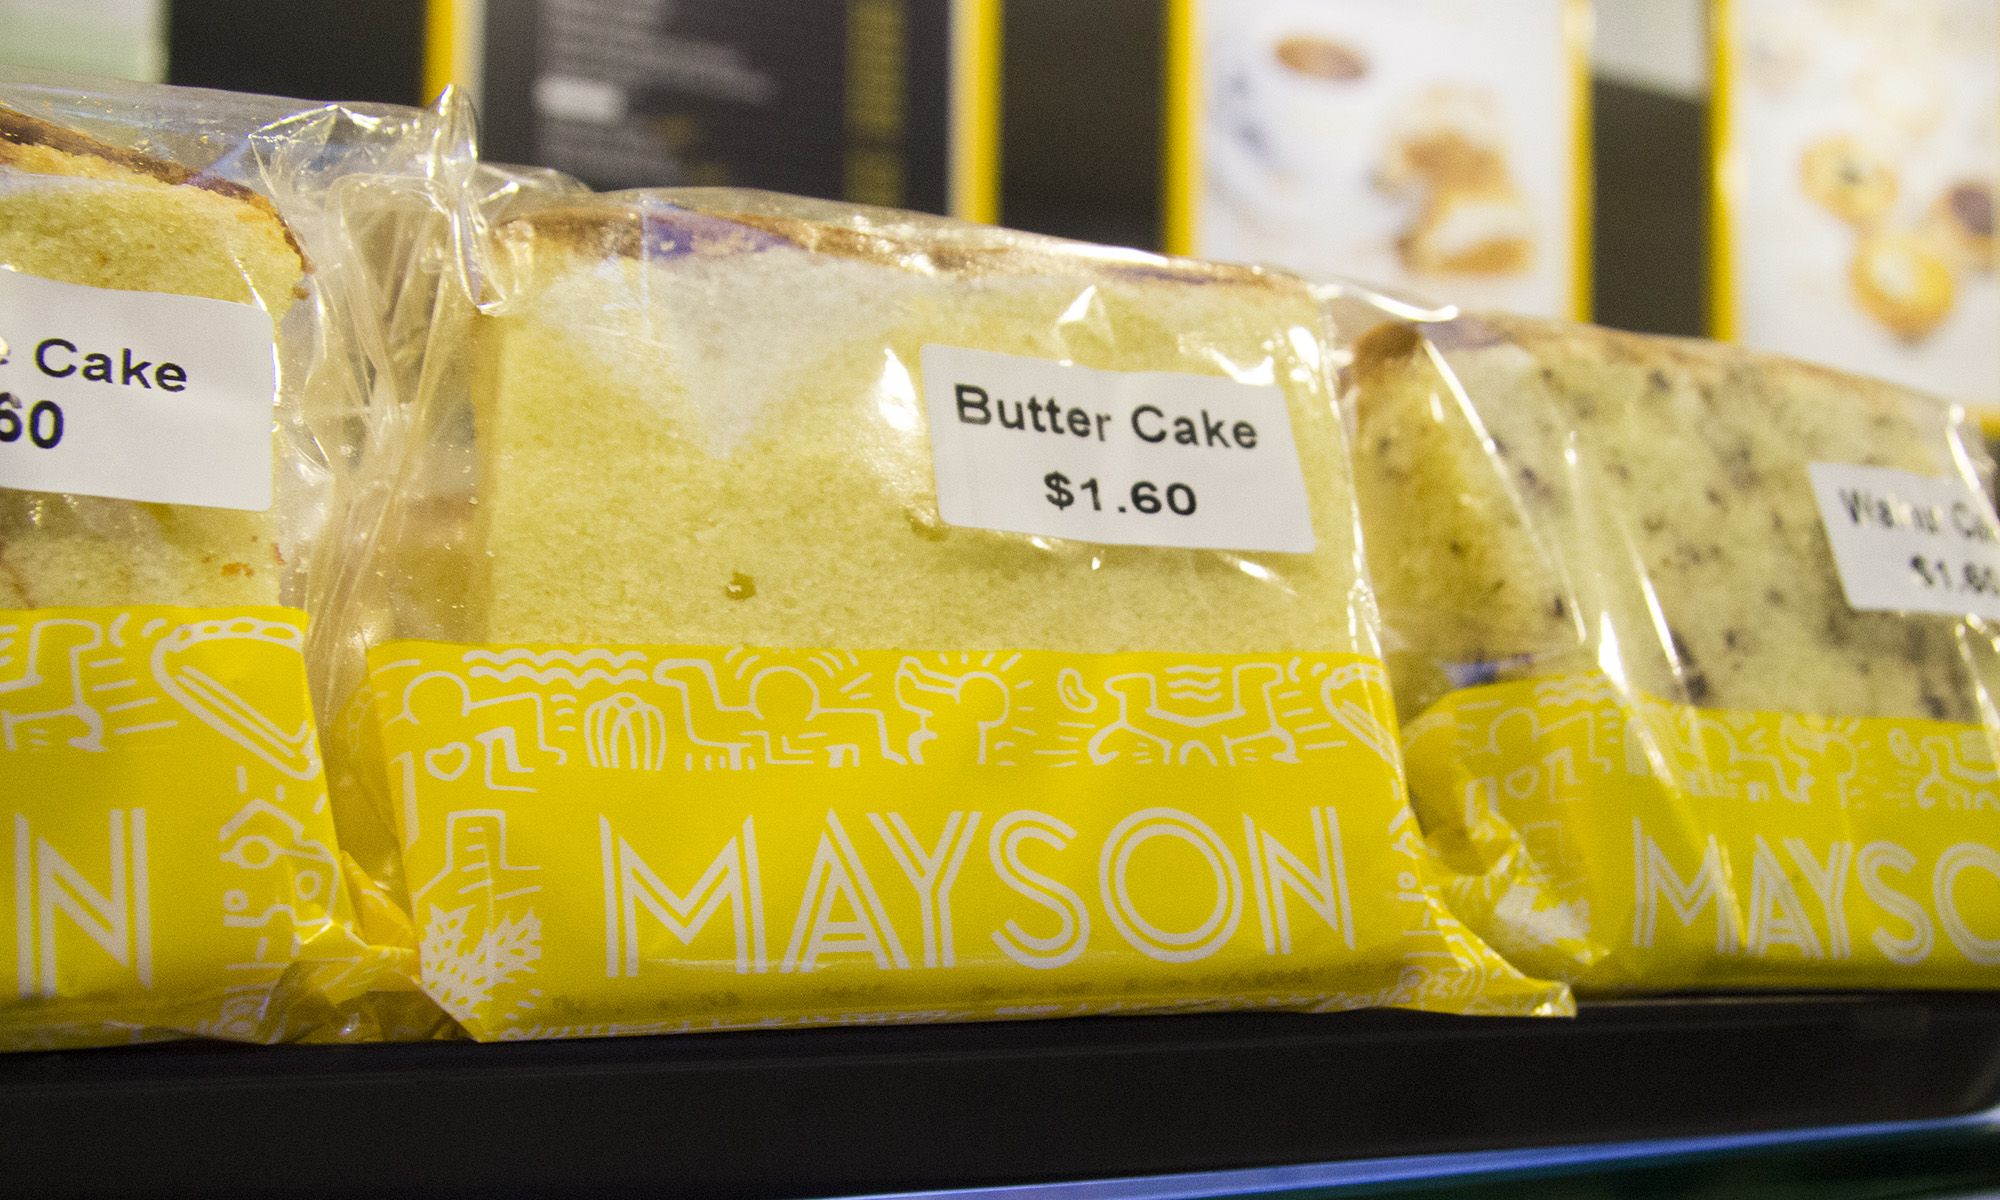 Mayson-bakery-singapore-cake-packaging